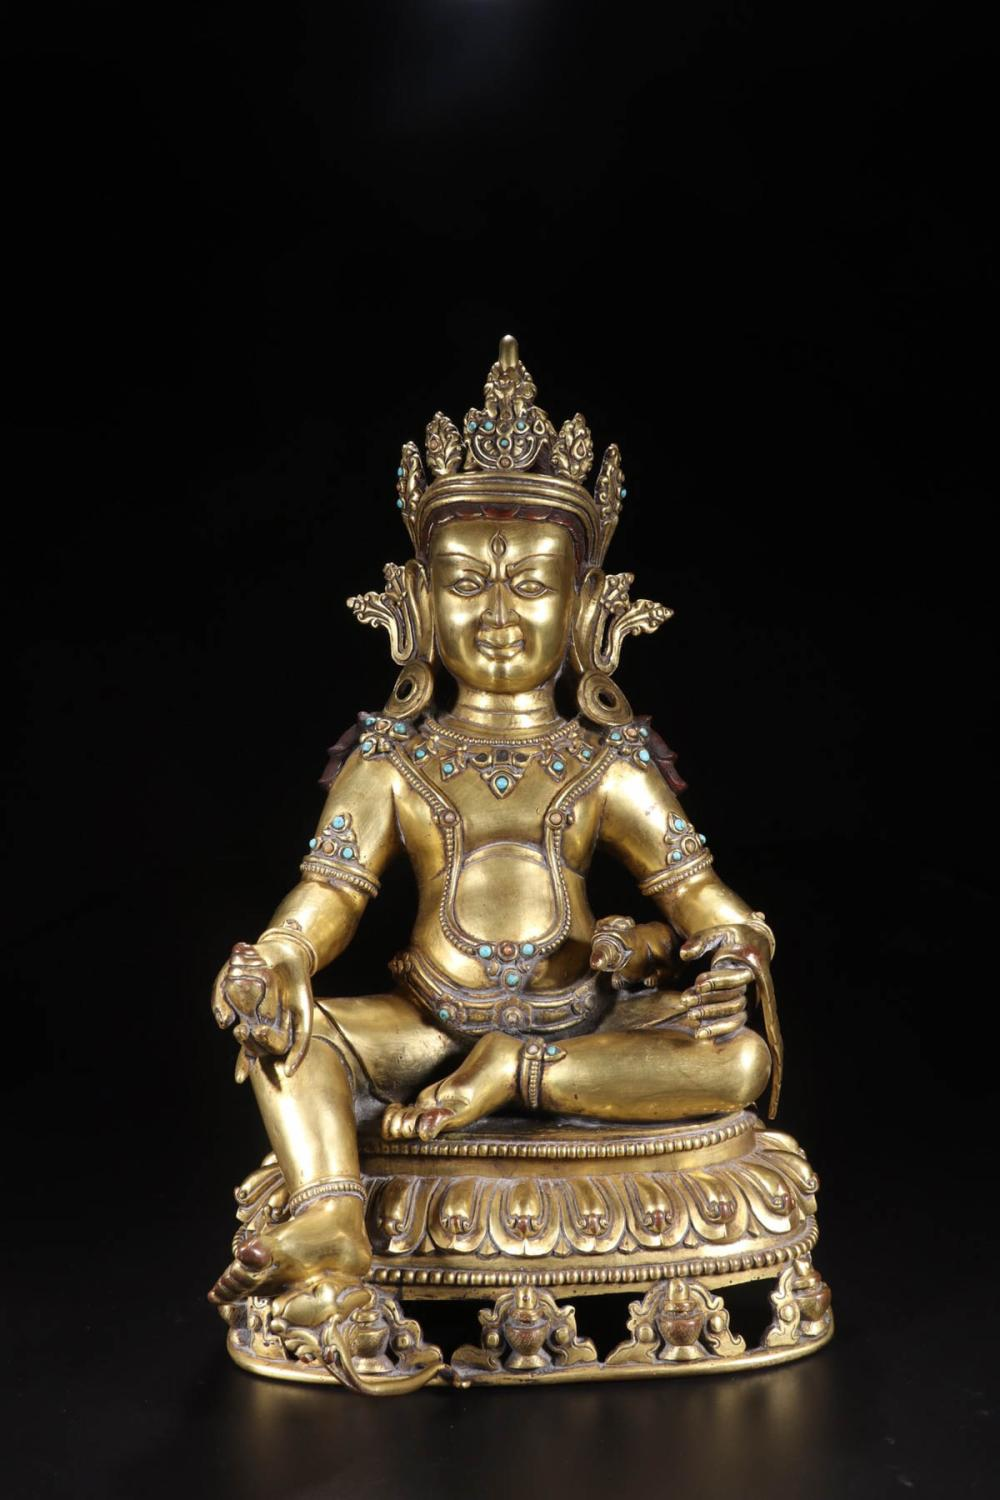 A GILT BRONZE EMBEDED WITH SONG STONE WEALTH BUDDHA